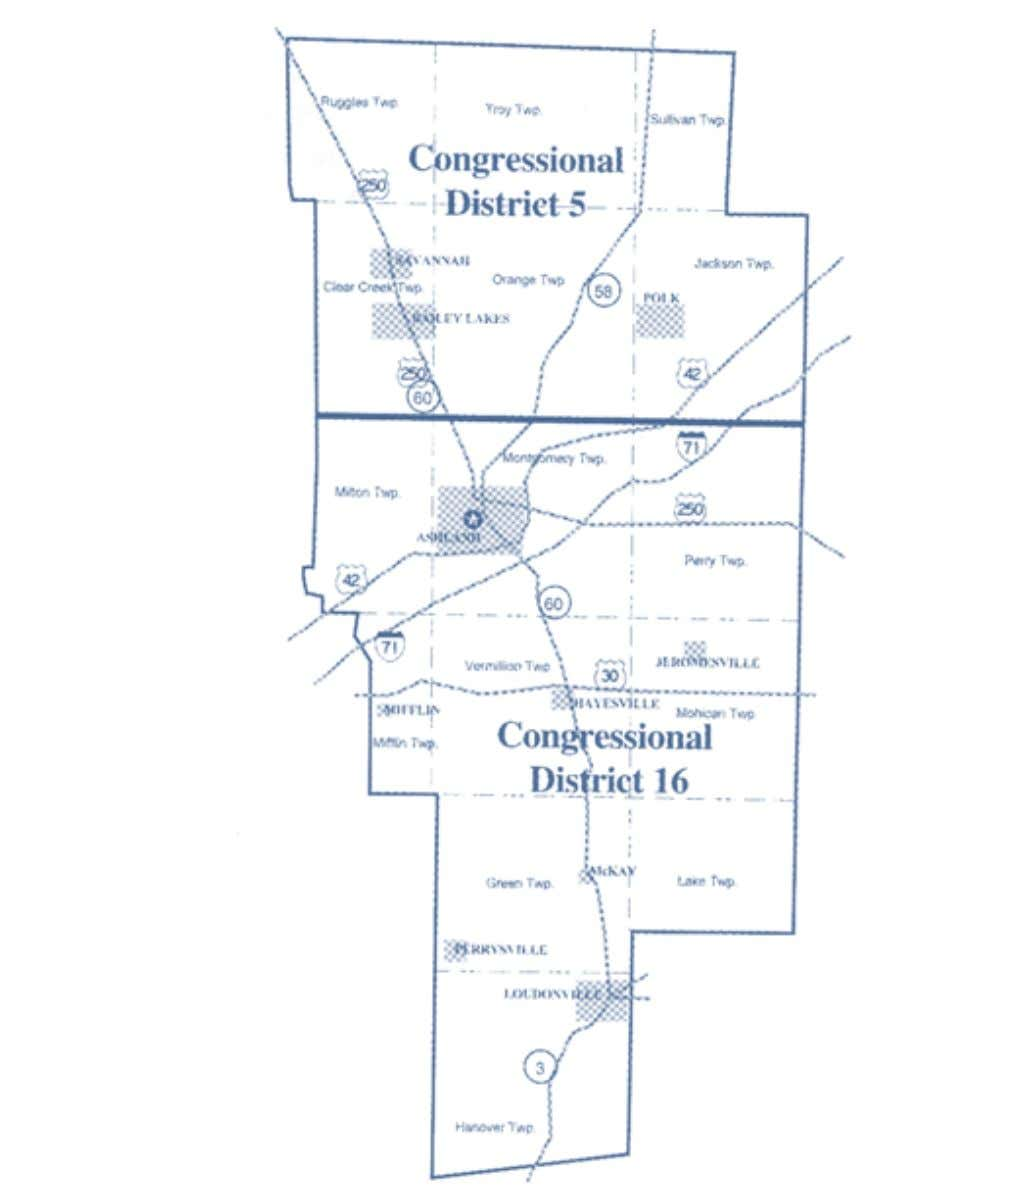 2002-2012 OhiO District Maps Ashland County Congressional Districts 6 Office of the Ohio Secretary of State